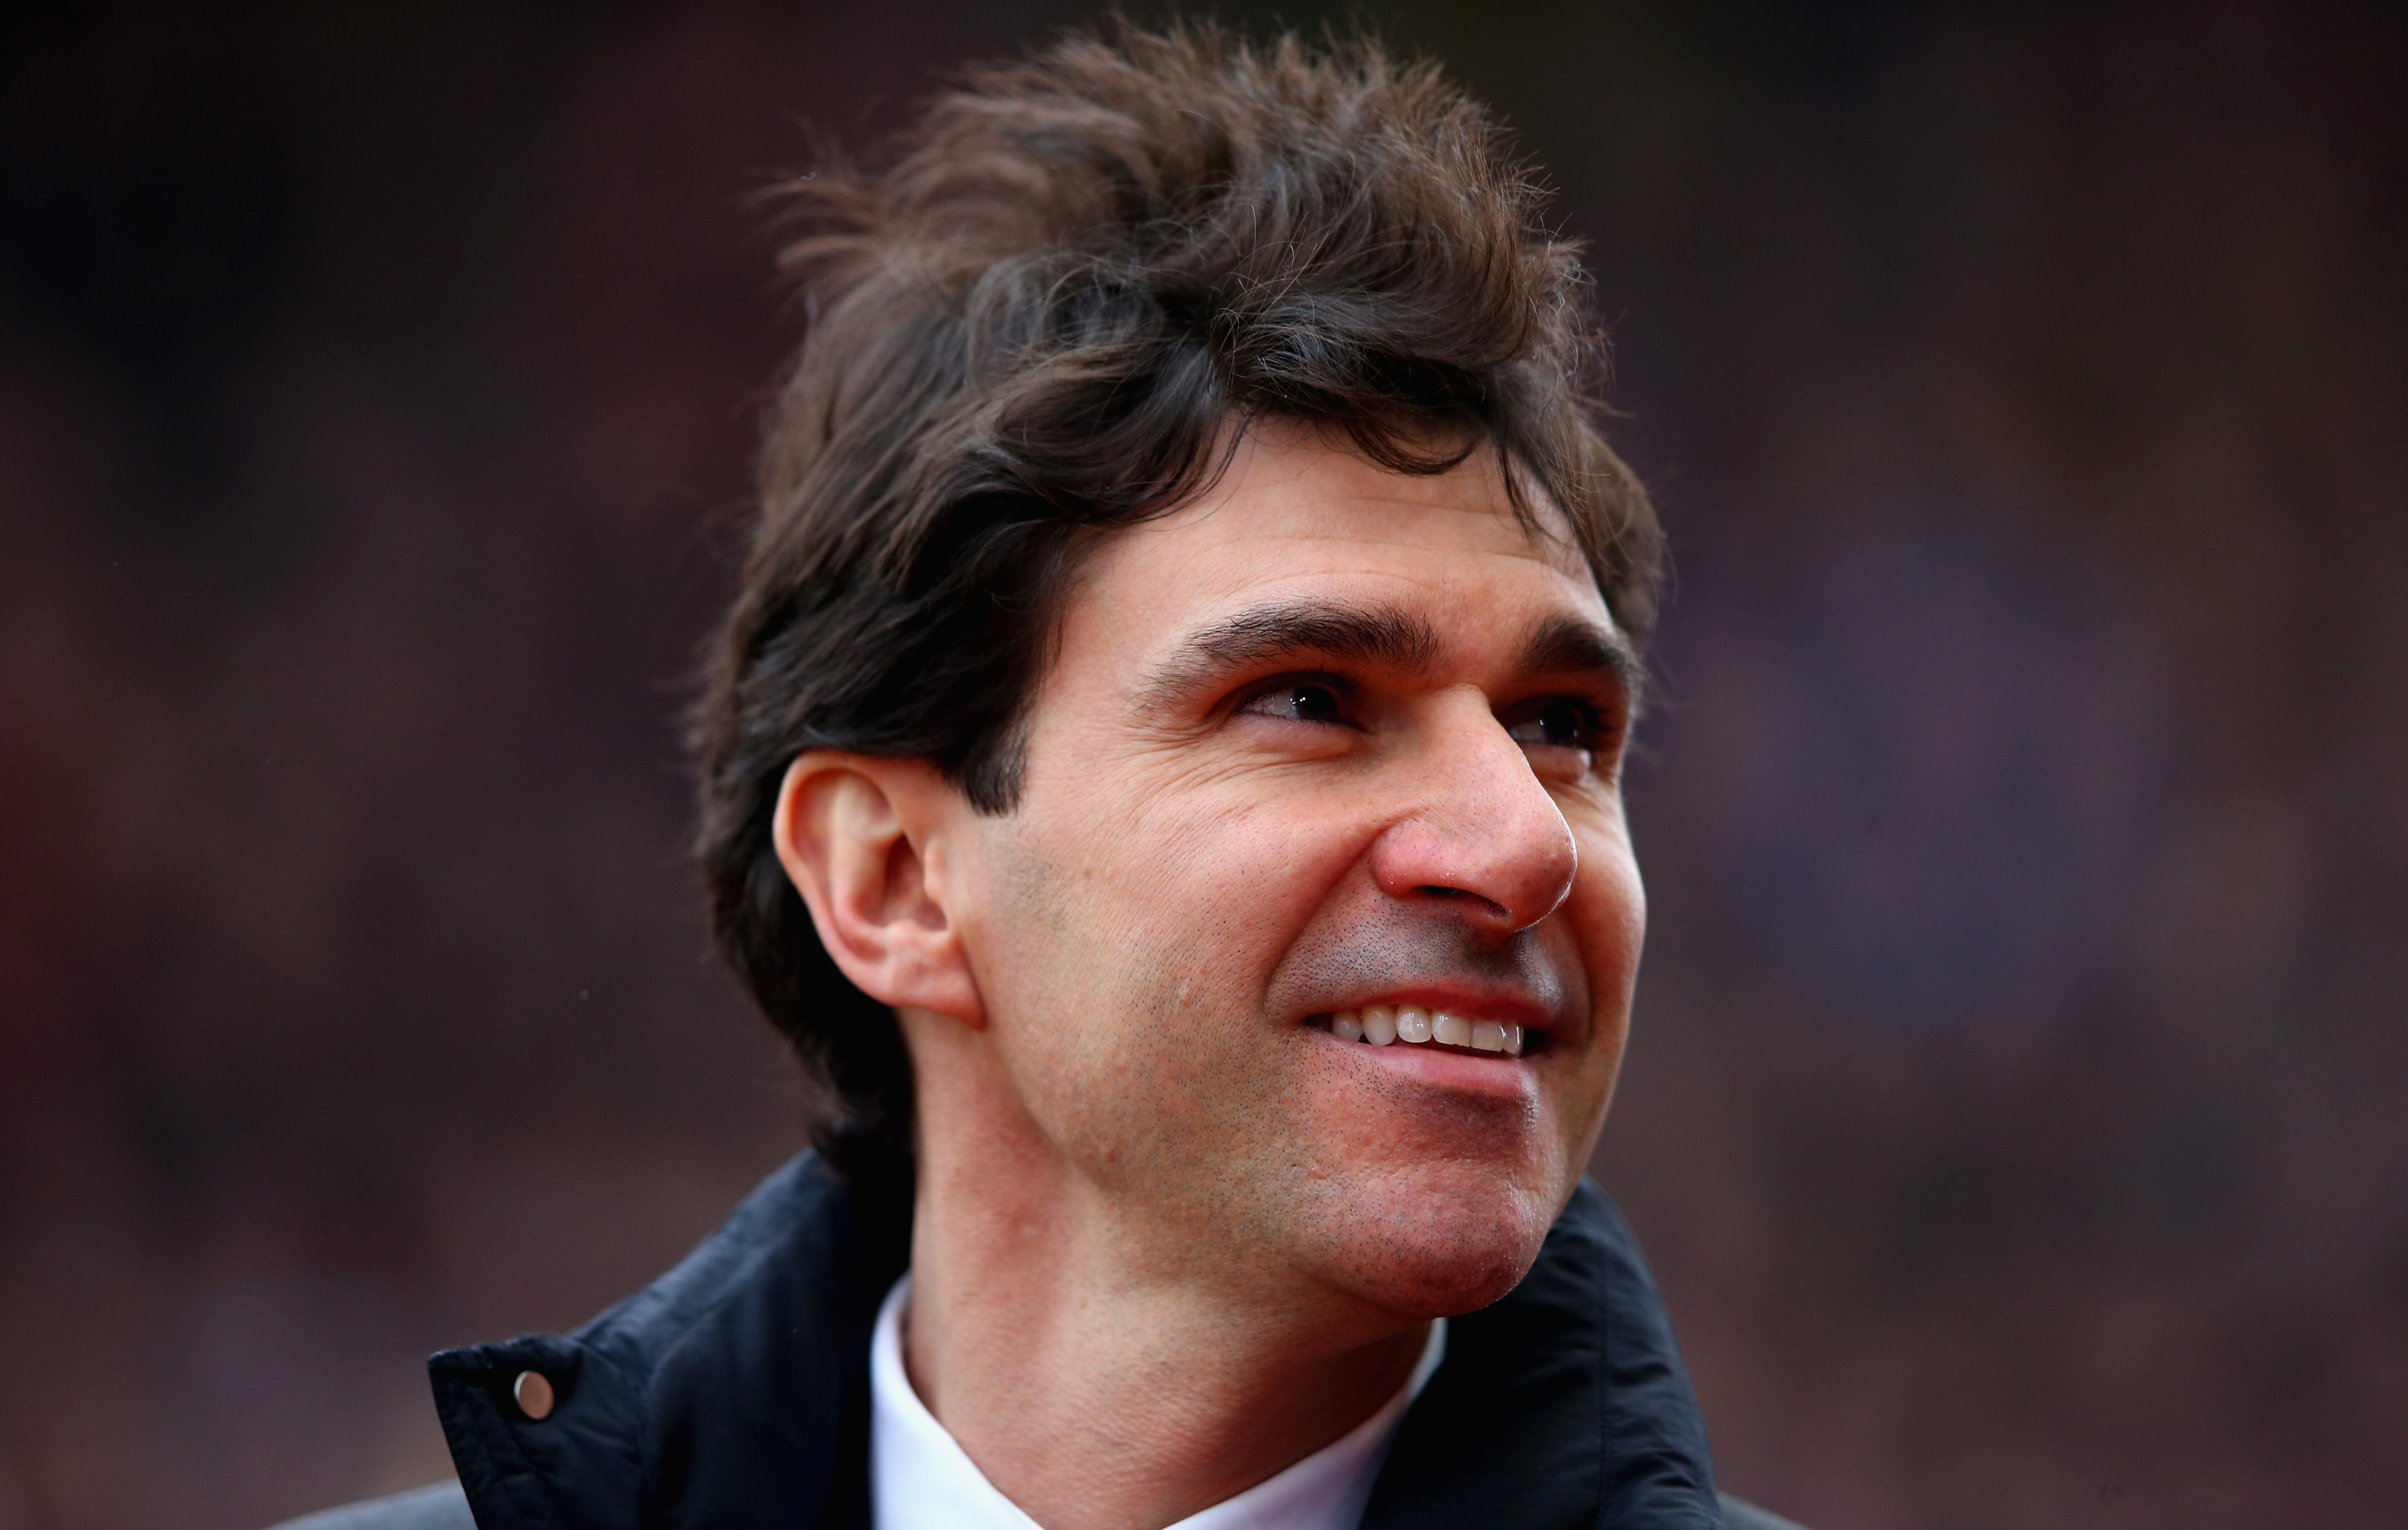 Karanka previews all 24 Championship sides ahead of new season in The Sun